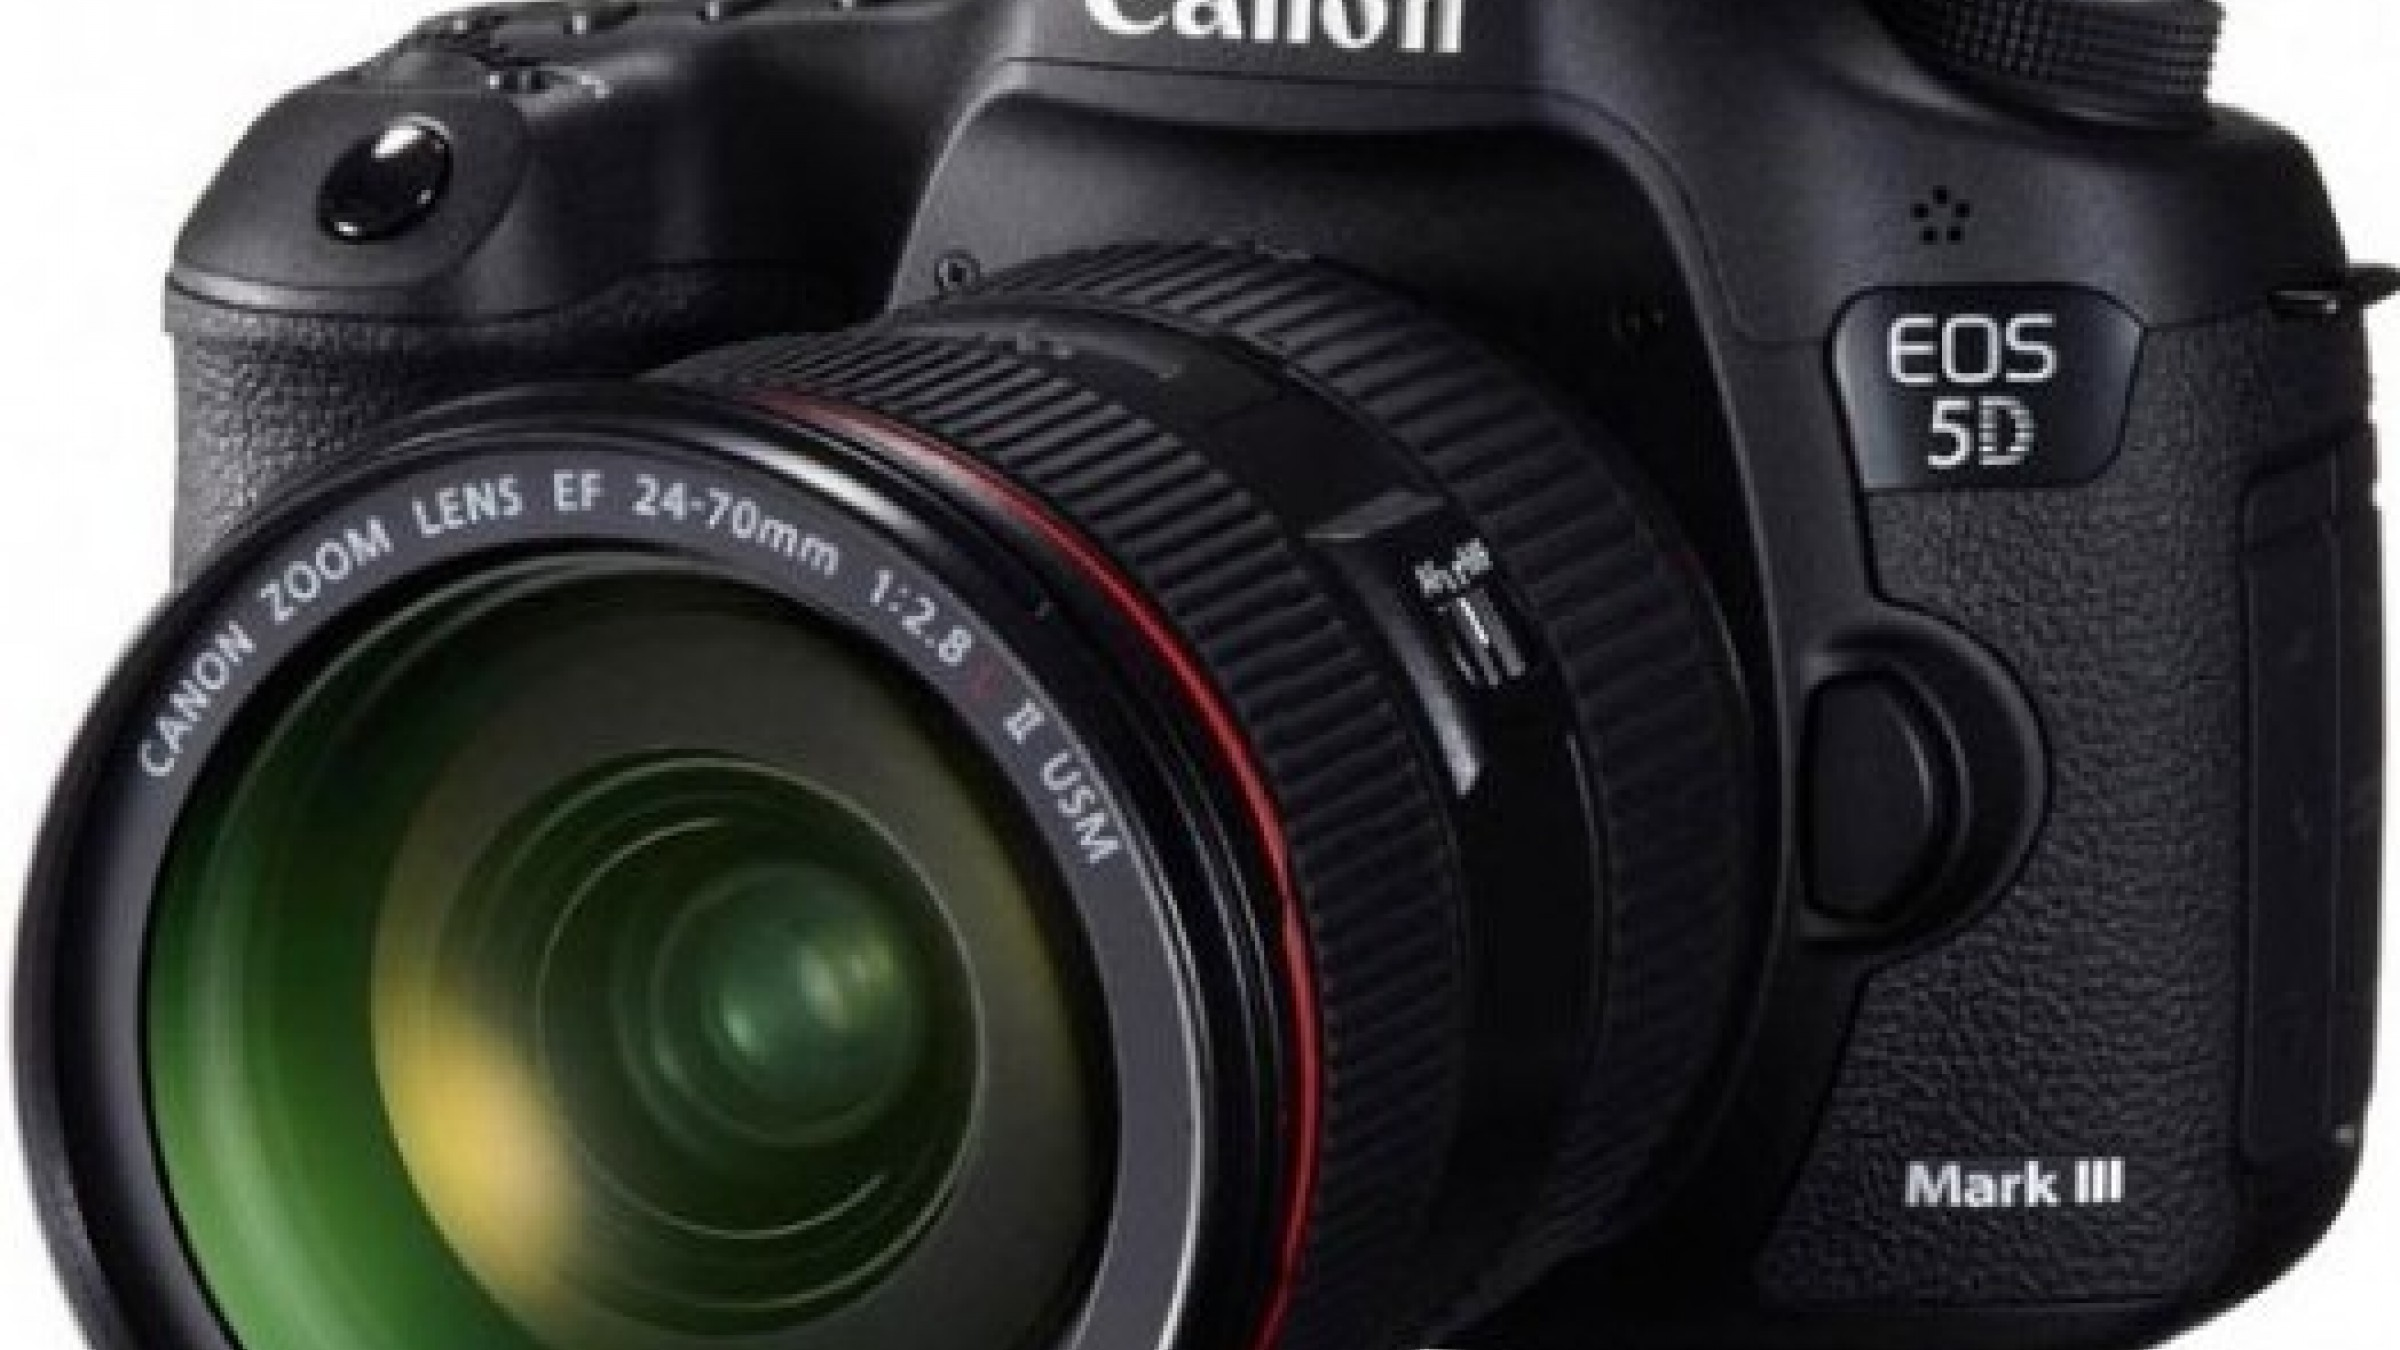 Will the Magic Lantern Canon DSLR RAW Video Hack Kill Your Camera's